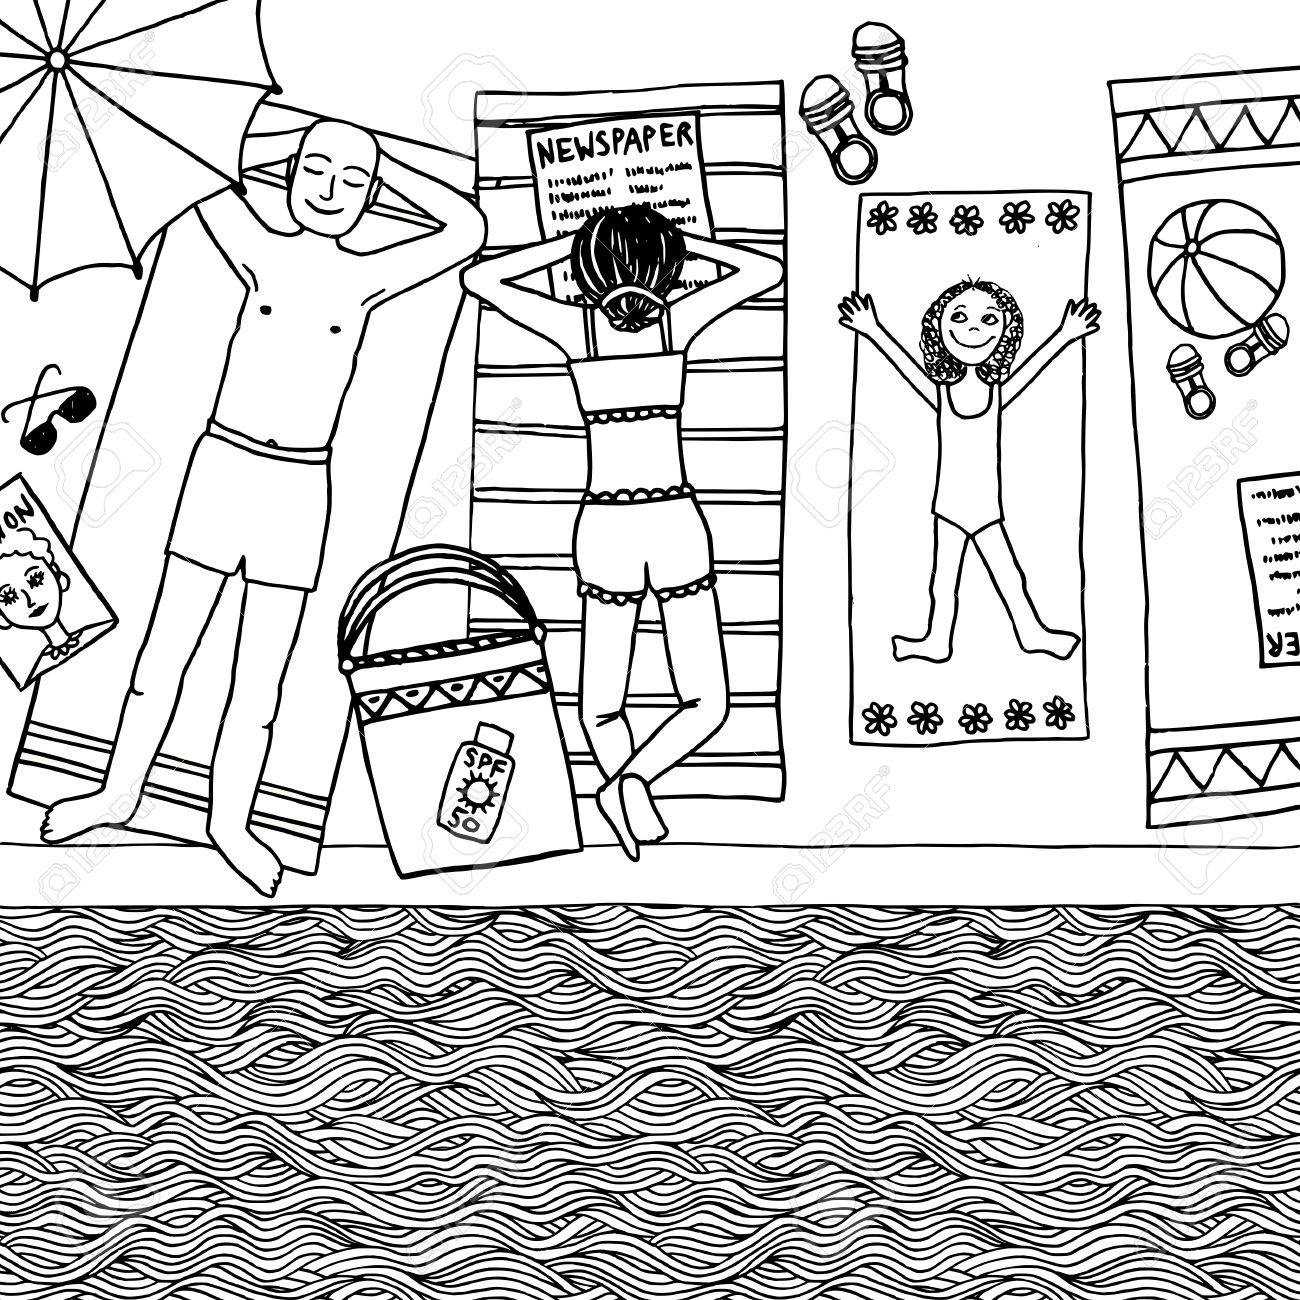 Hand Drawn Illustration Of A Family With Daughter Lying At The Swimming Pool Top View